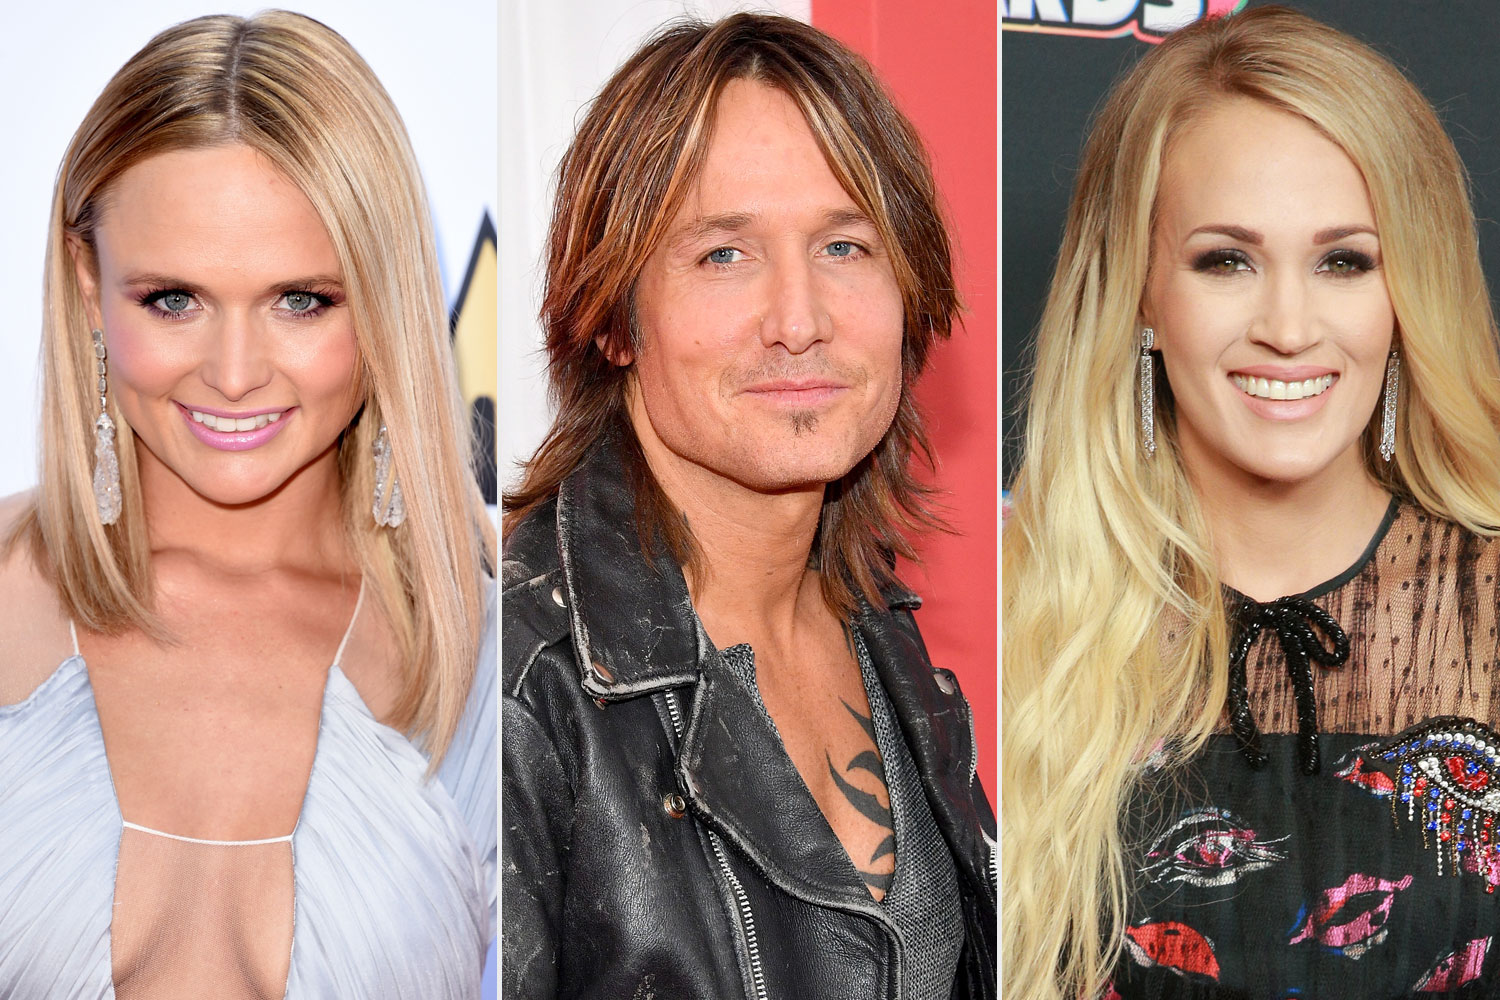 Miranda Lambert, Keith Urban, Carrie Underwood